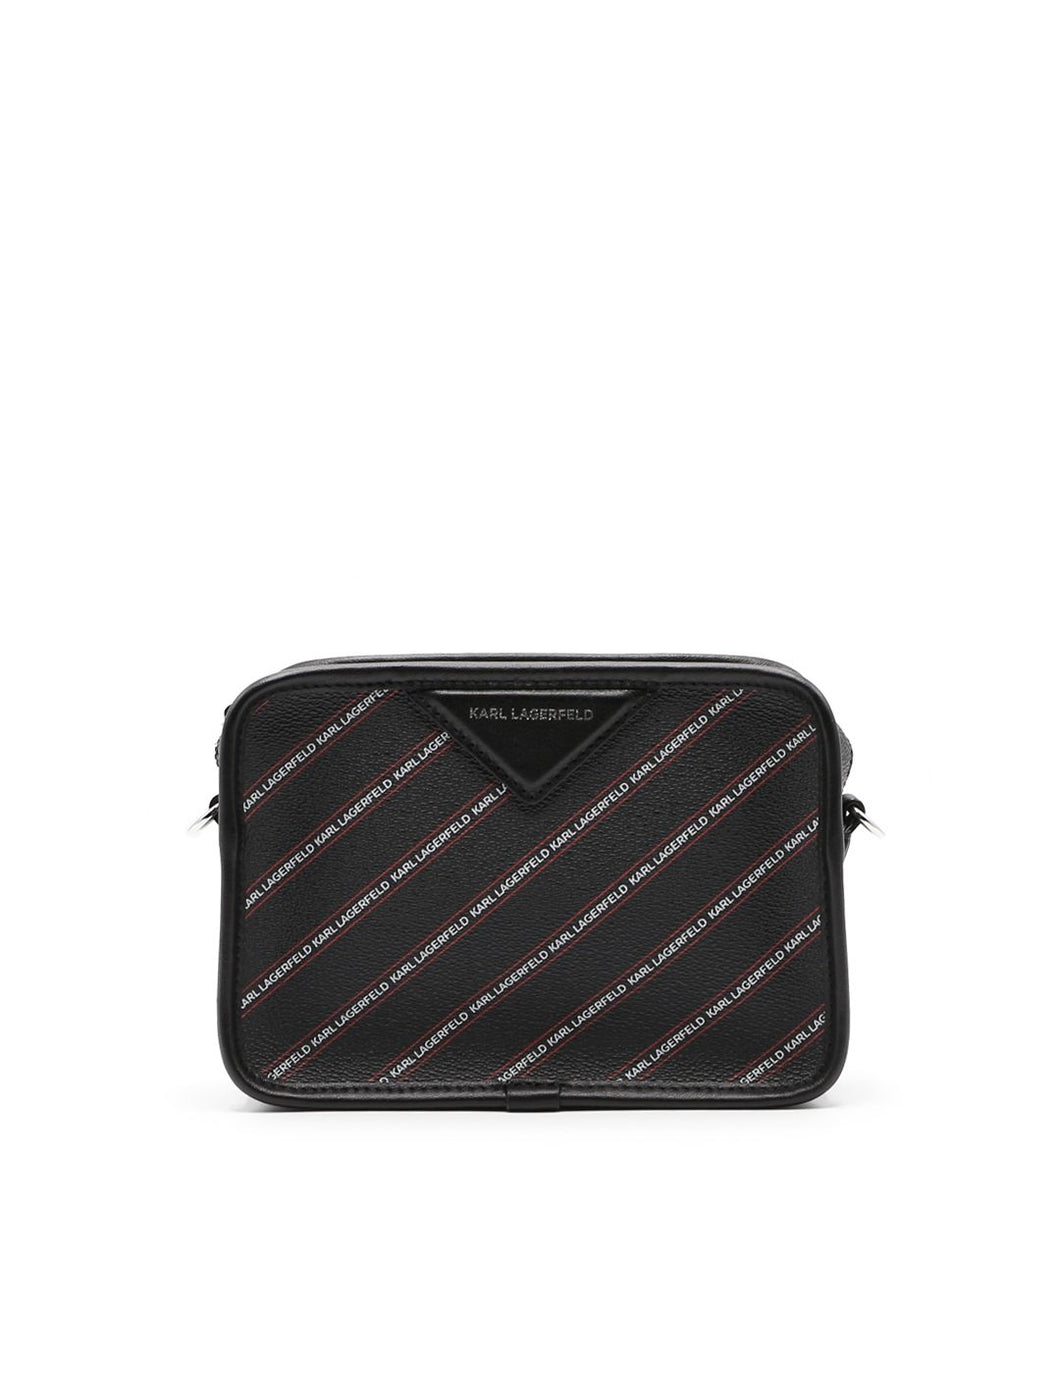 KARL LAGERFELD k/stripe mini crossbody bag